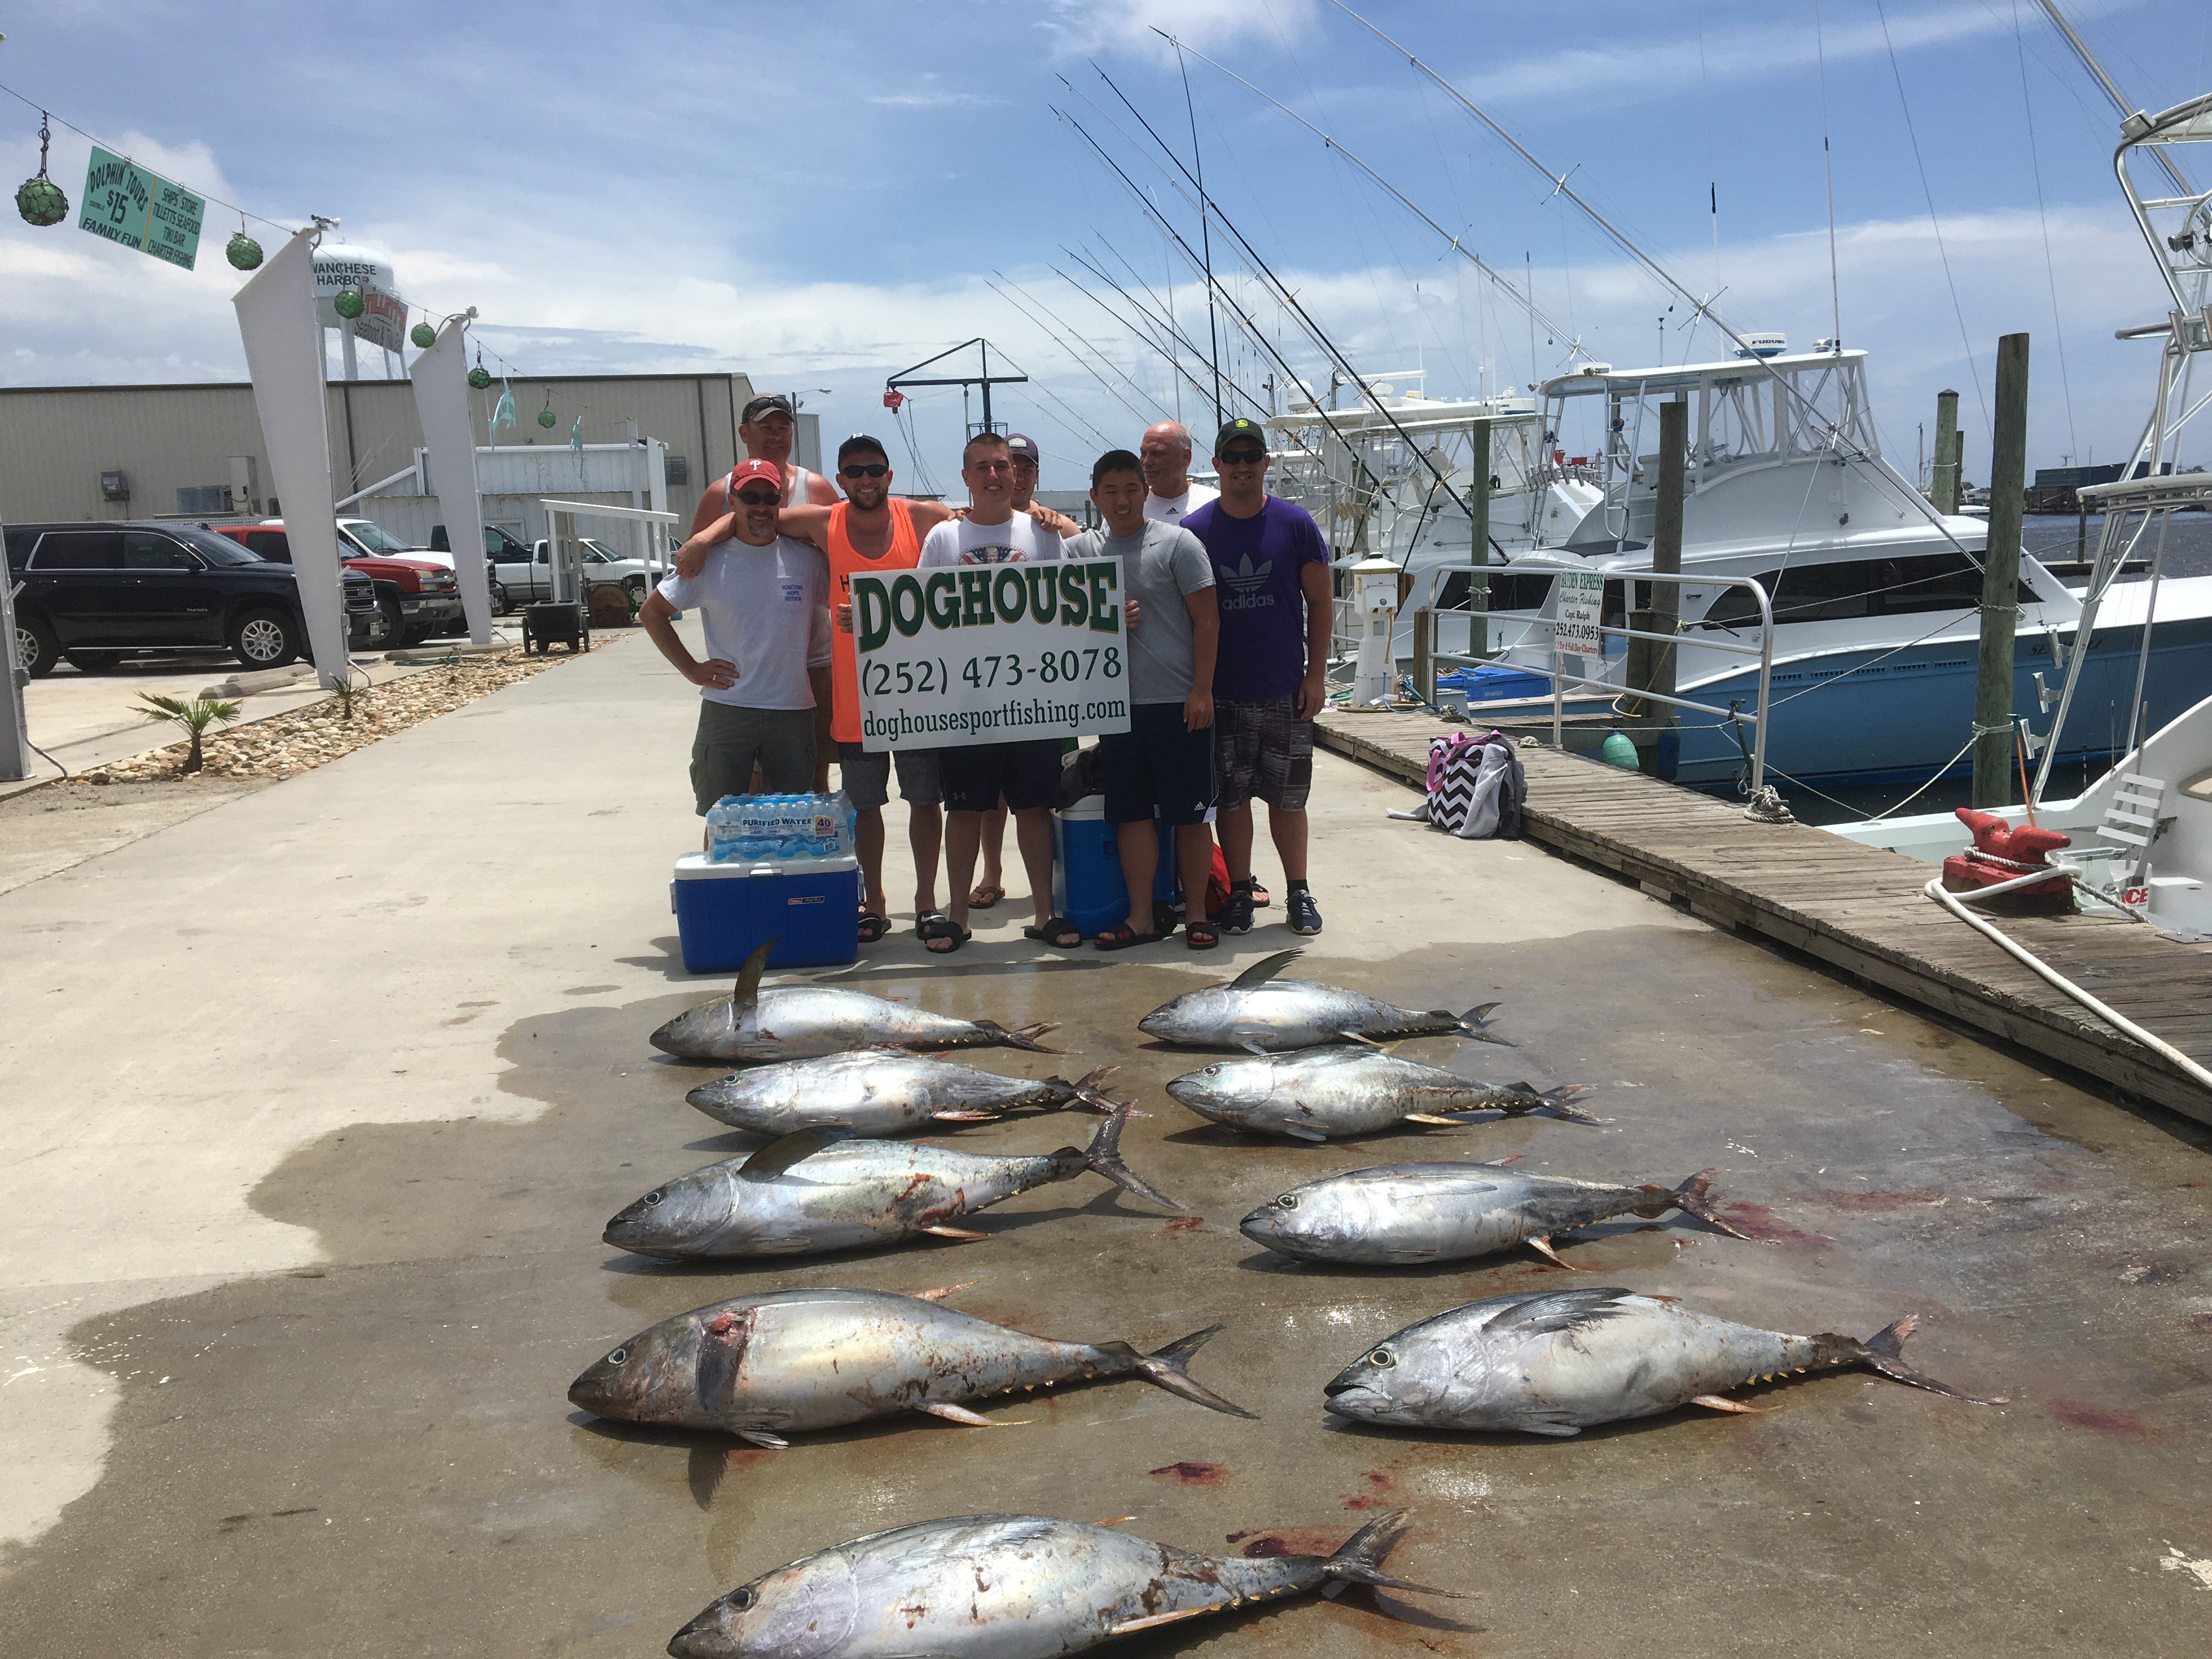 6 20 2017 june 20 2017 obx marina outer banks for Obx fishing report